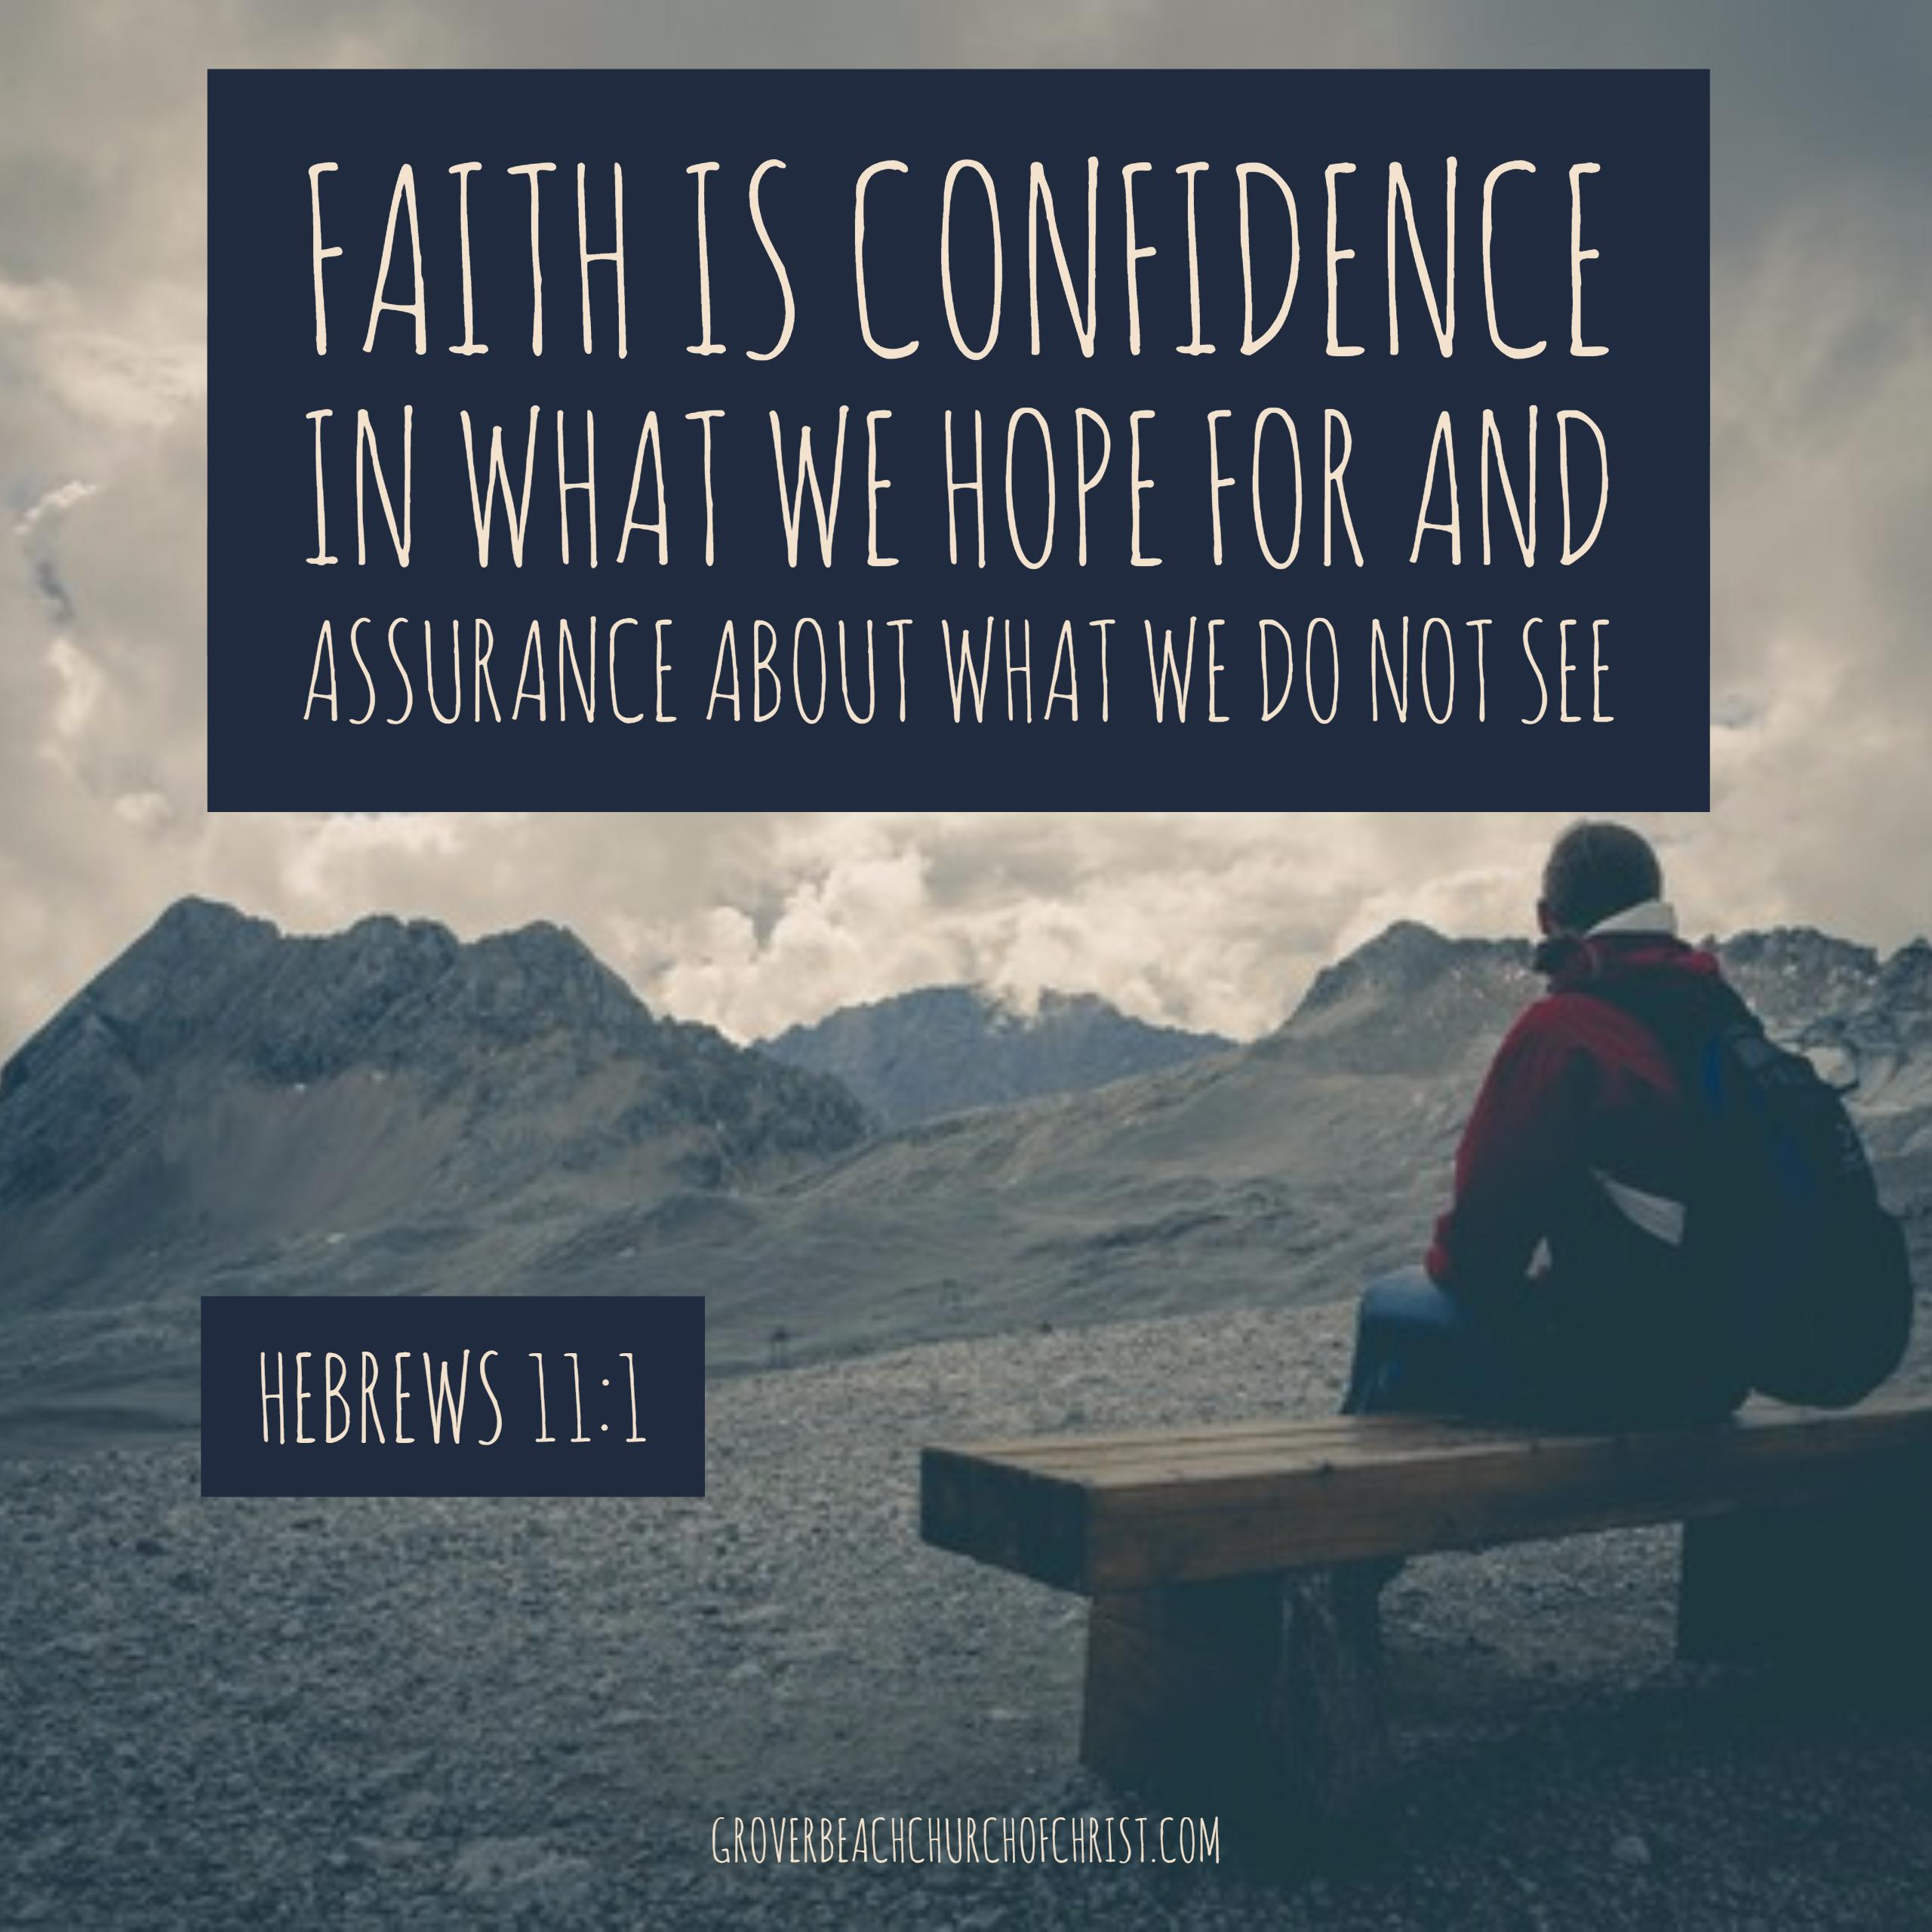 hebrews-11-1-faith-is-confidence-in-what